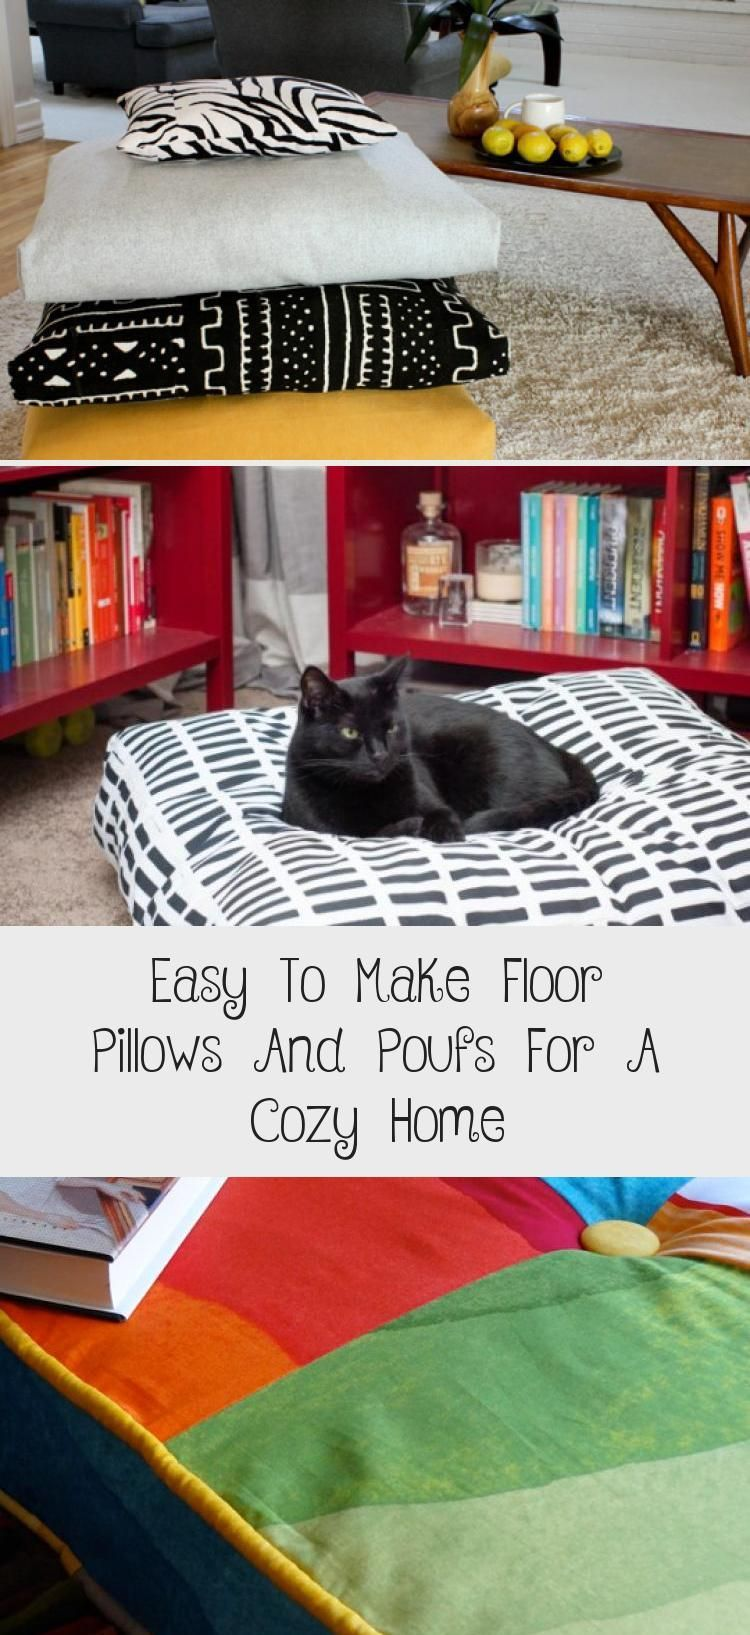 floor cushion Brilliant cheap way to make insert! Use two old pillows | big pillows